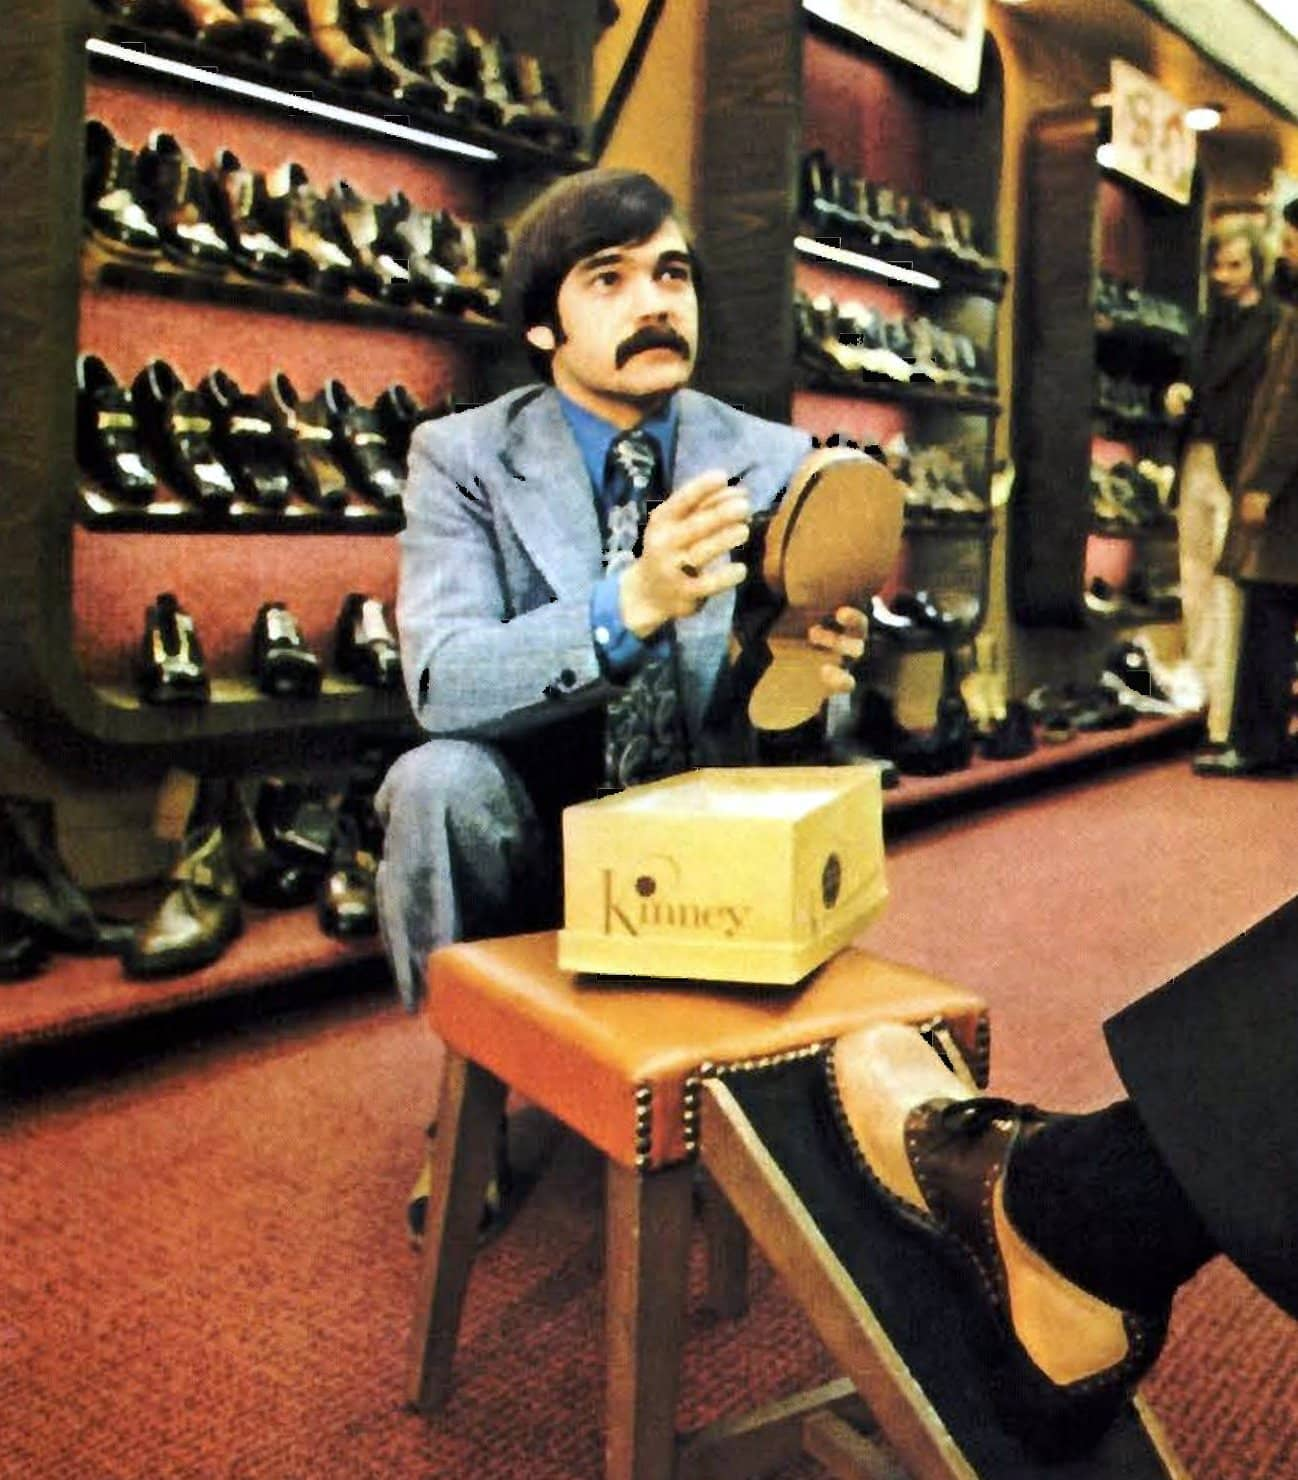 Shoe store salesman helping a customer try on shoes (1973)